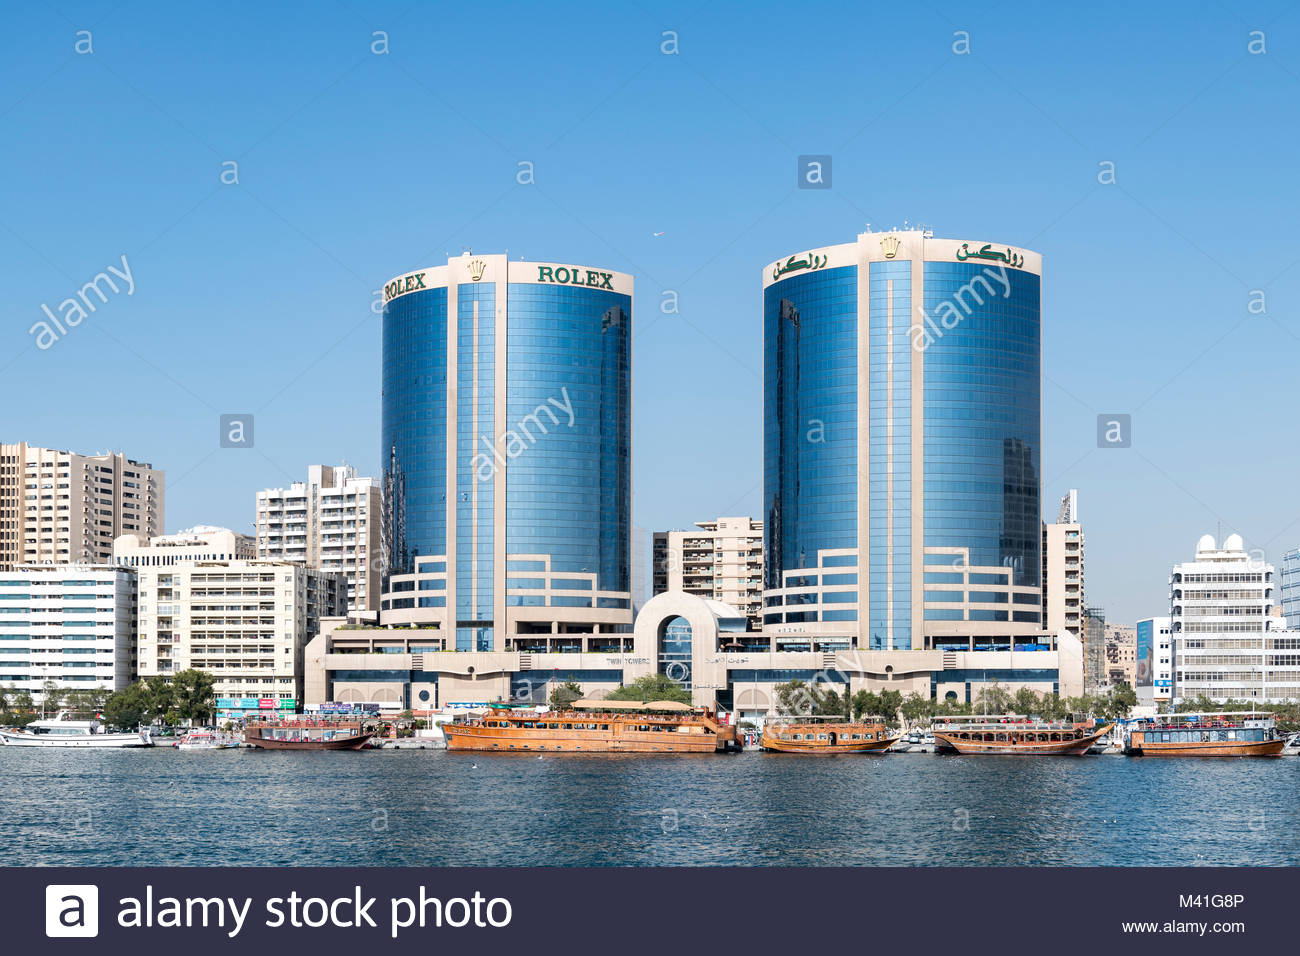 The Deira Twin Towers Also Known As Dubai Or Rolex Was Built In 1998 And Feature 22 Floors 102 Meter High Buildings